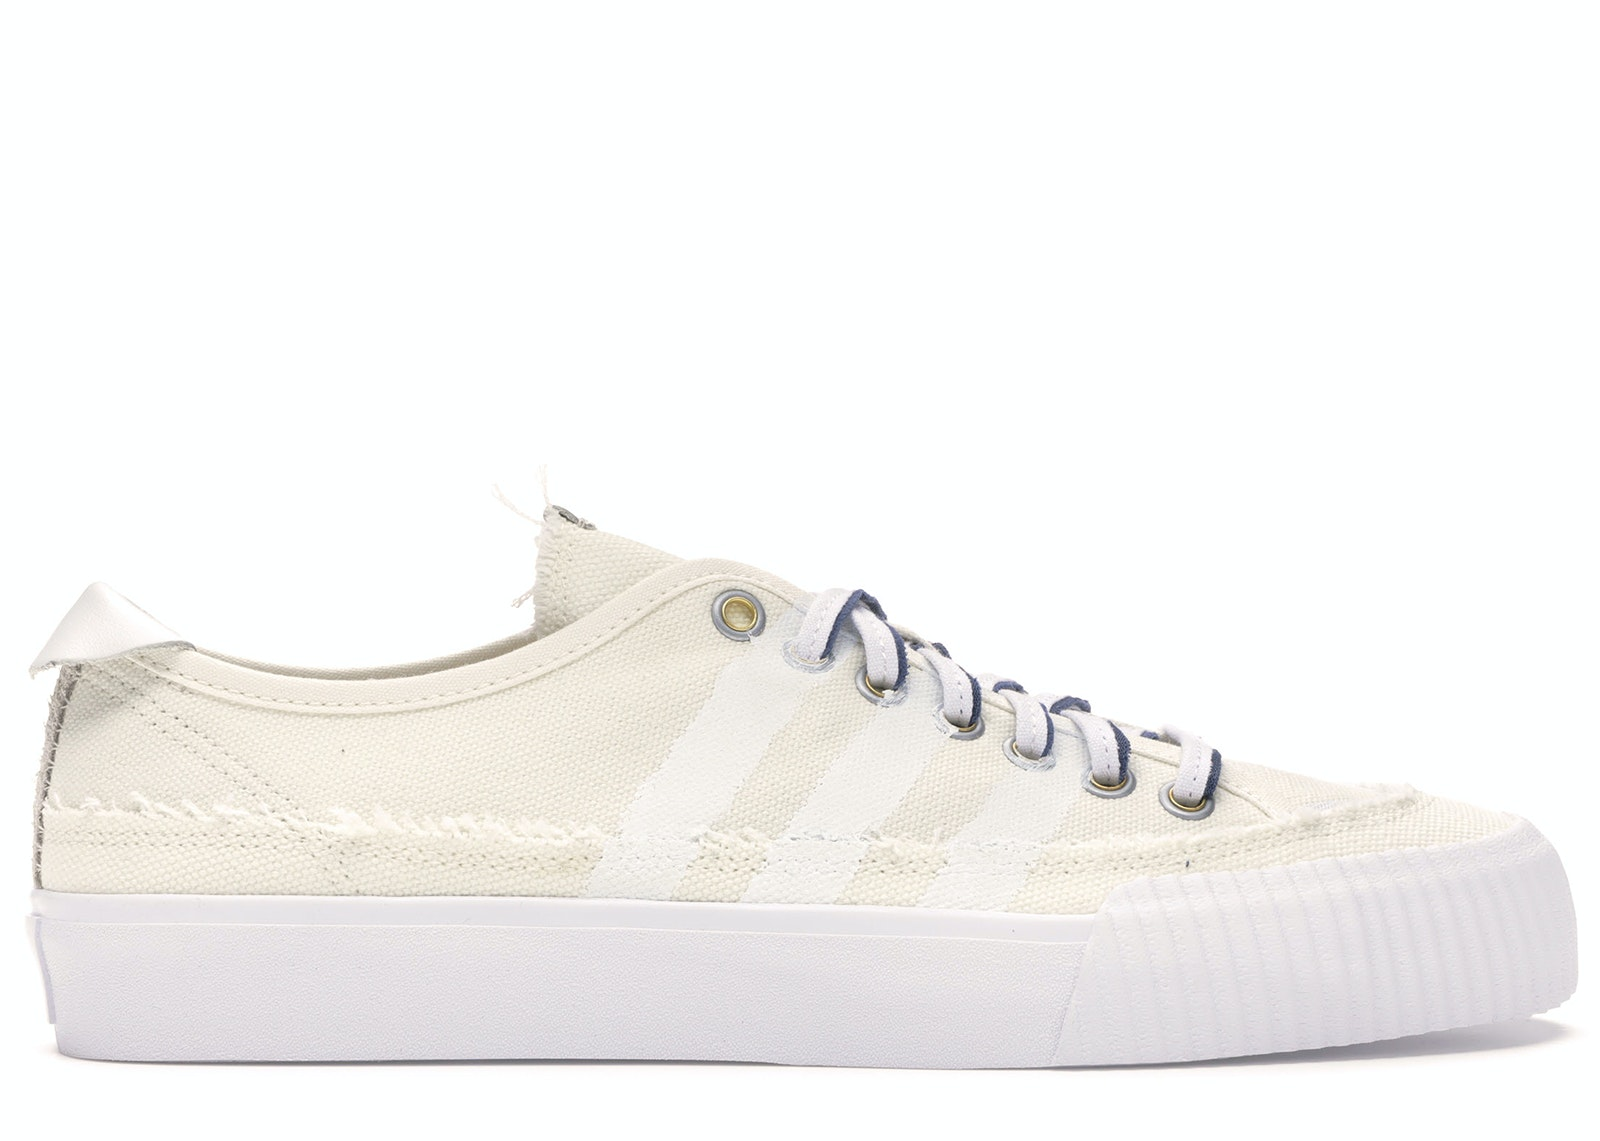 adidas Nizza Donald Glover Off White